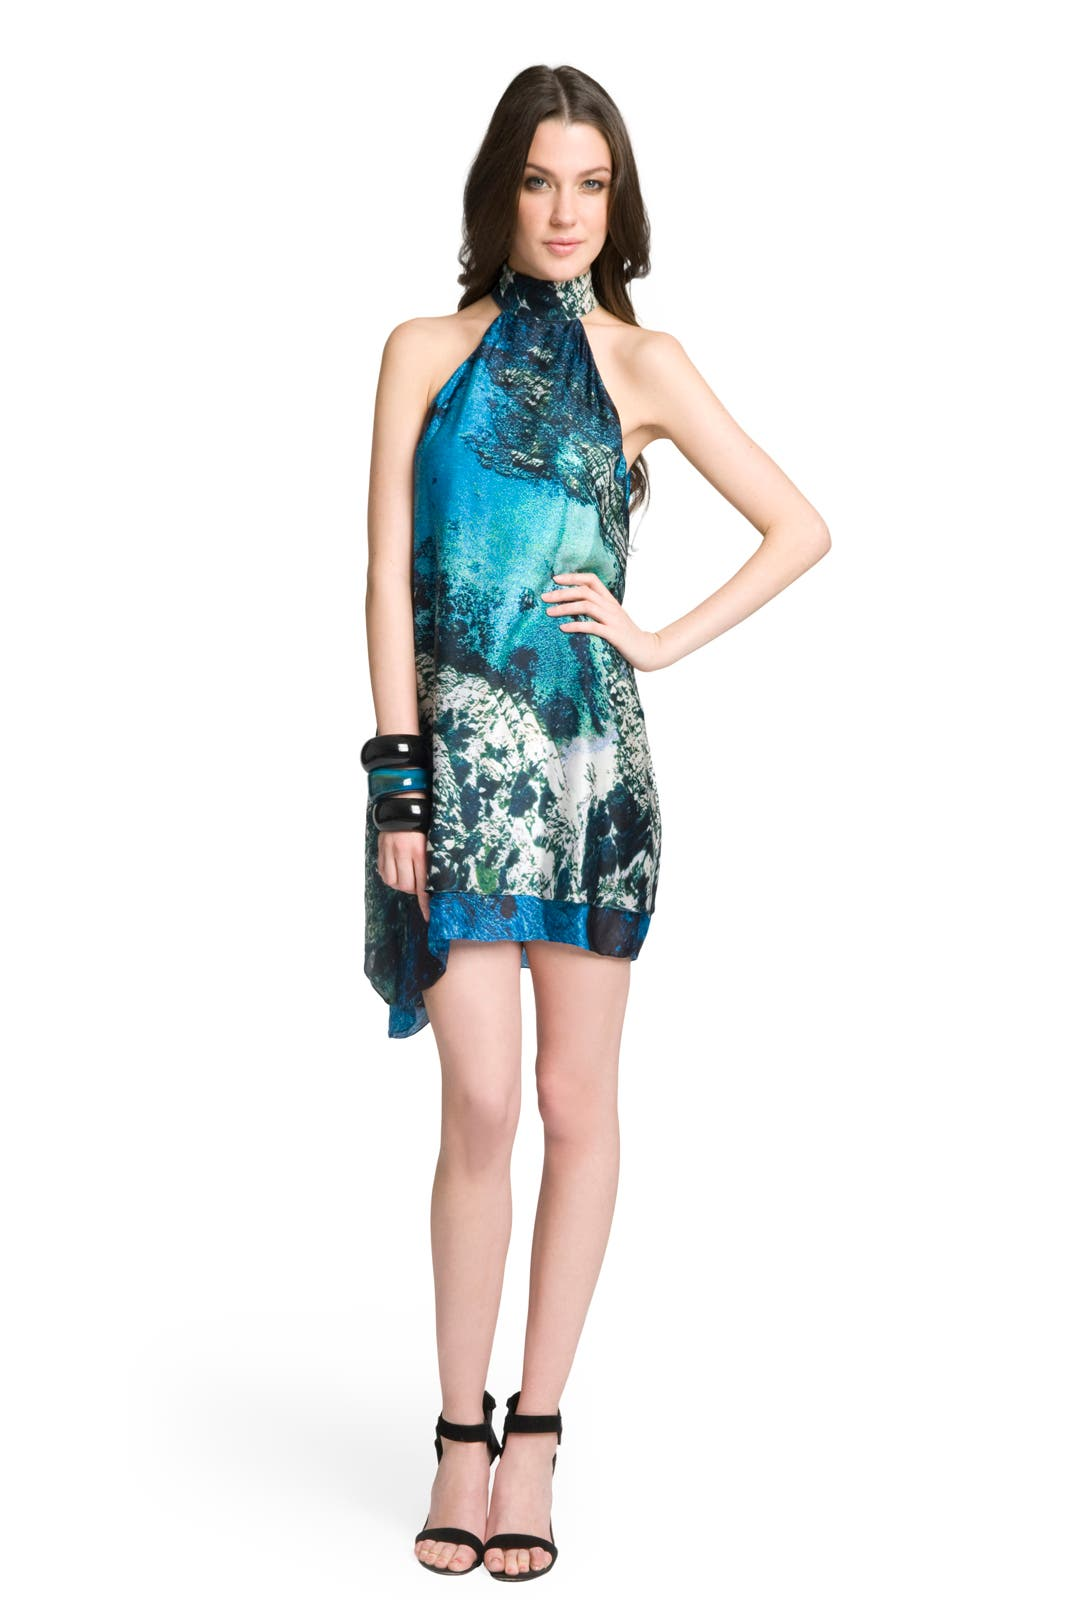 Brilliant Blue Halter Dress by Christian Siriano